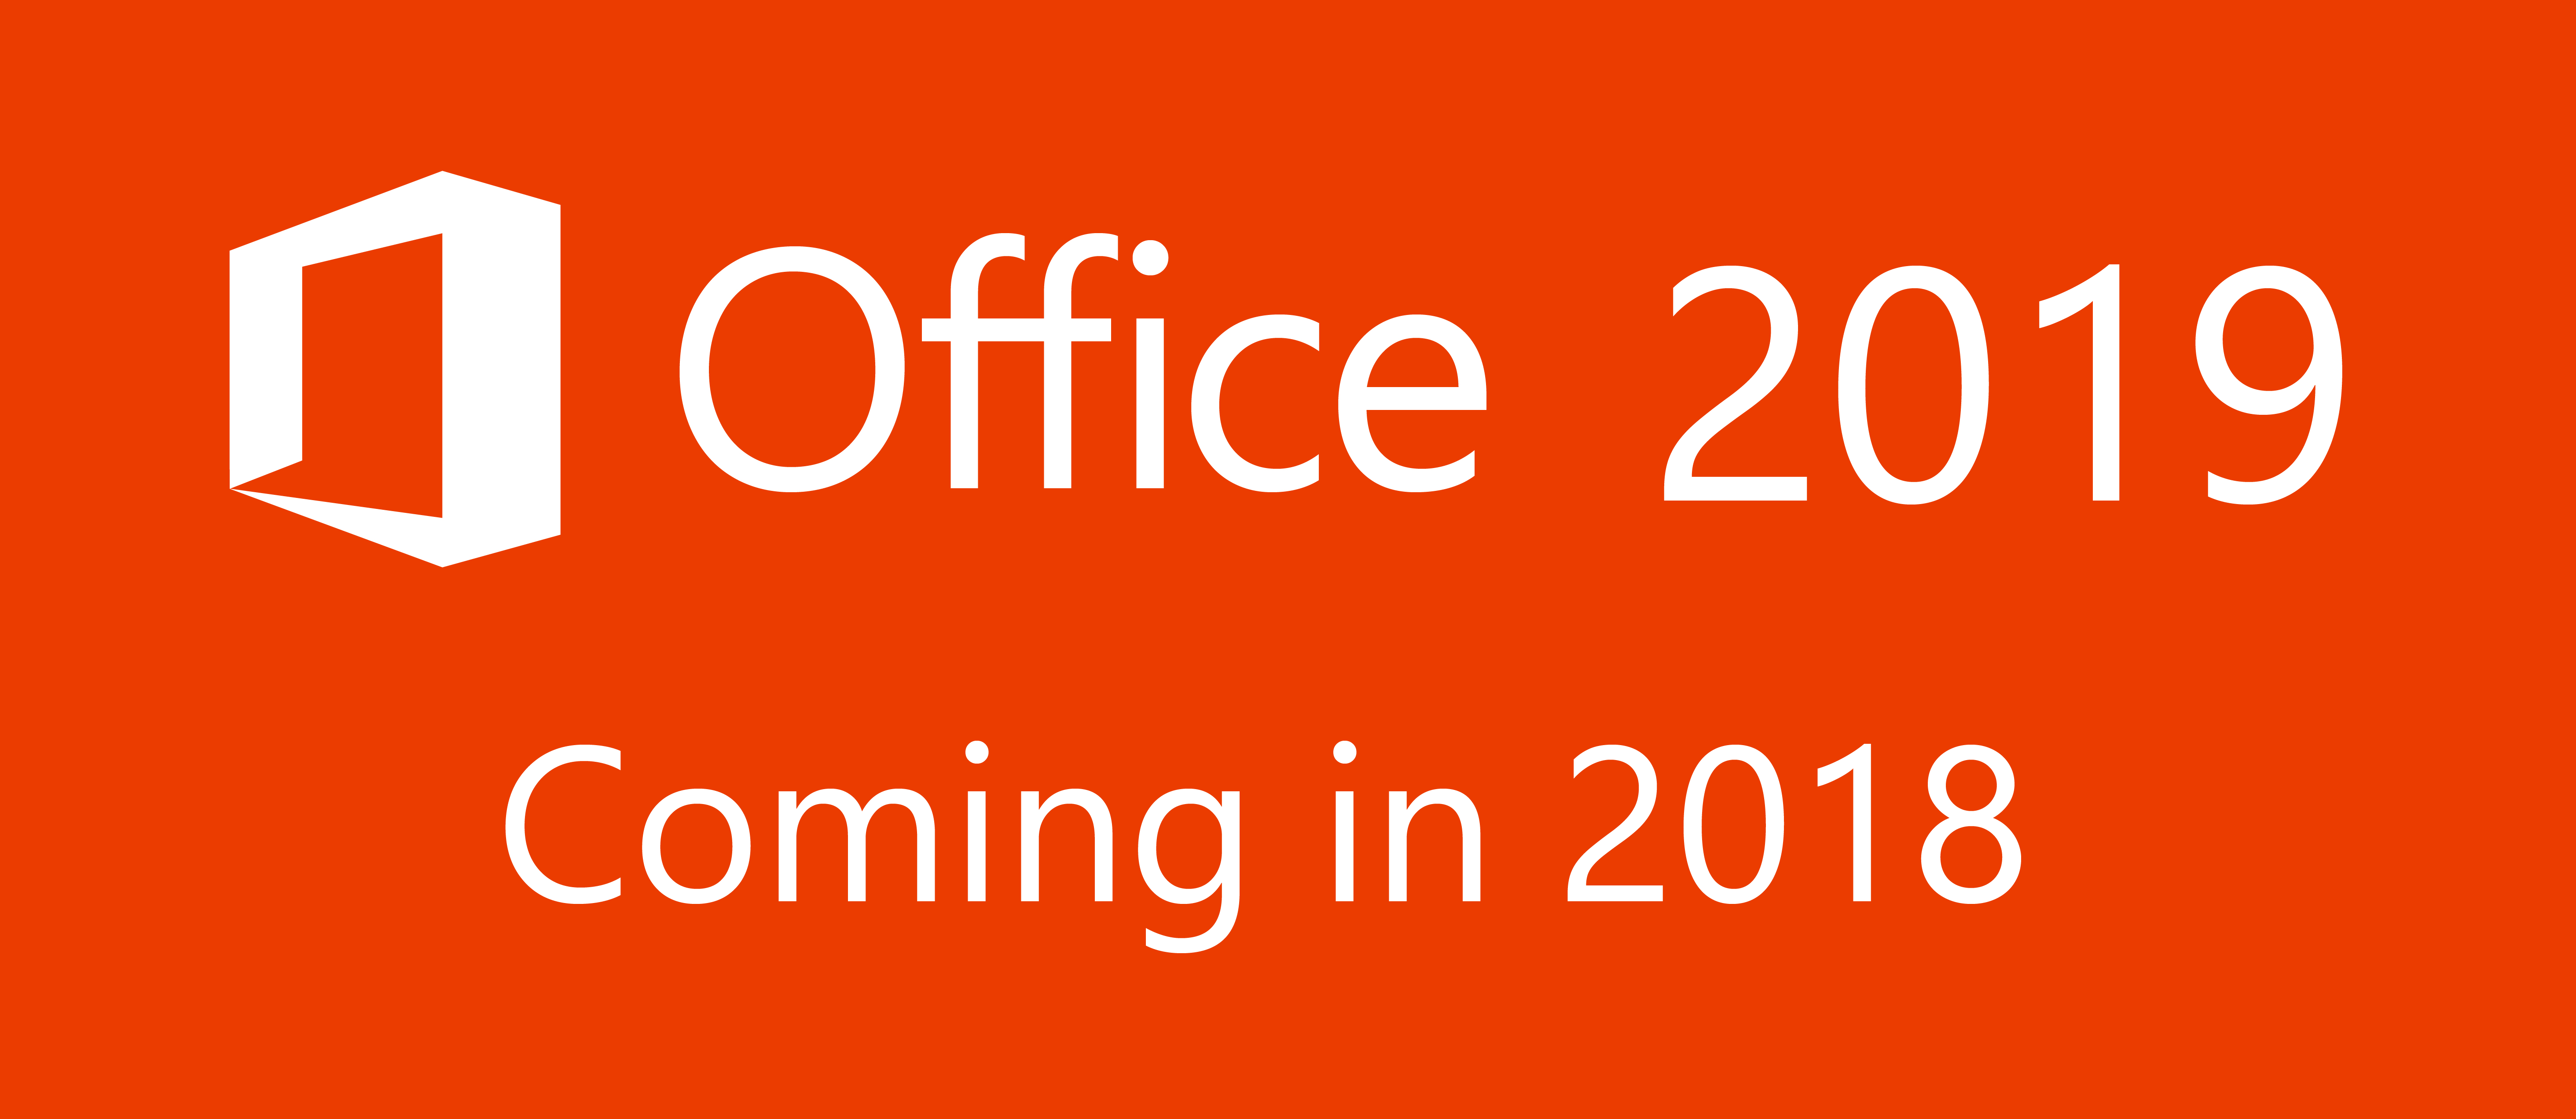 microsoft, office, powerpoint, excel, word, 2019, 2018